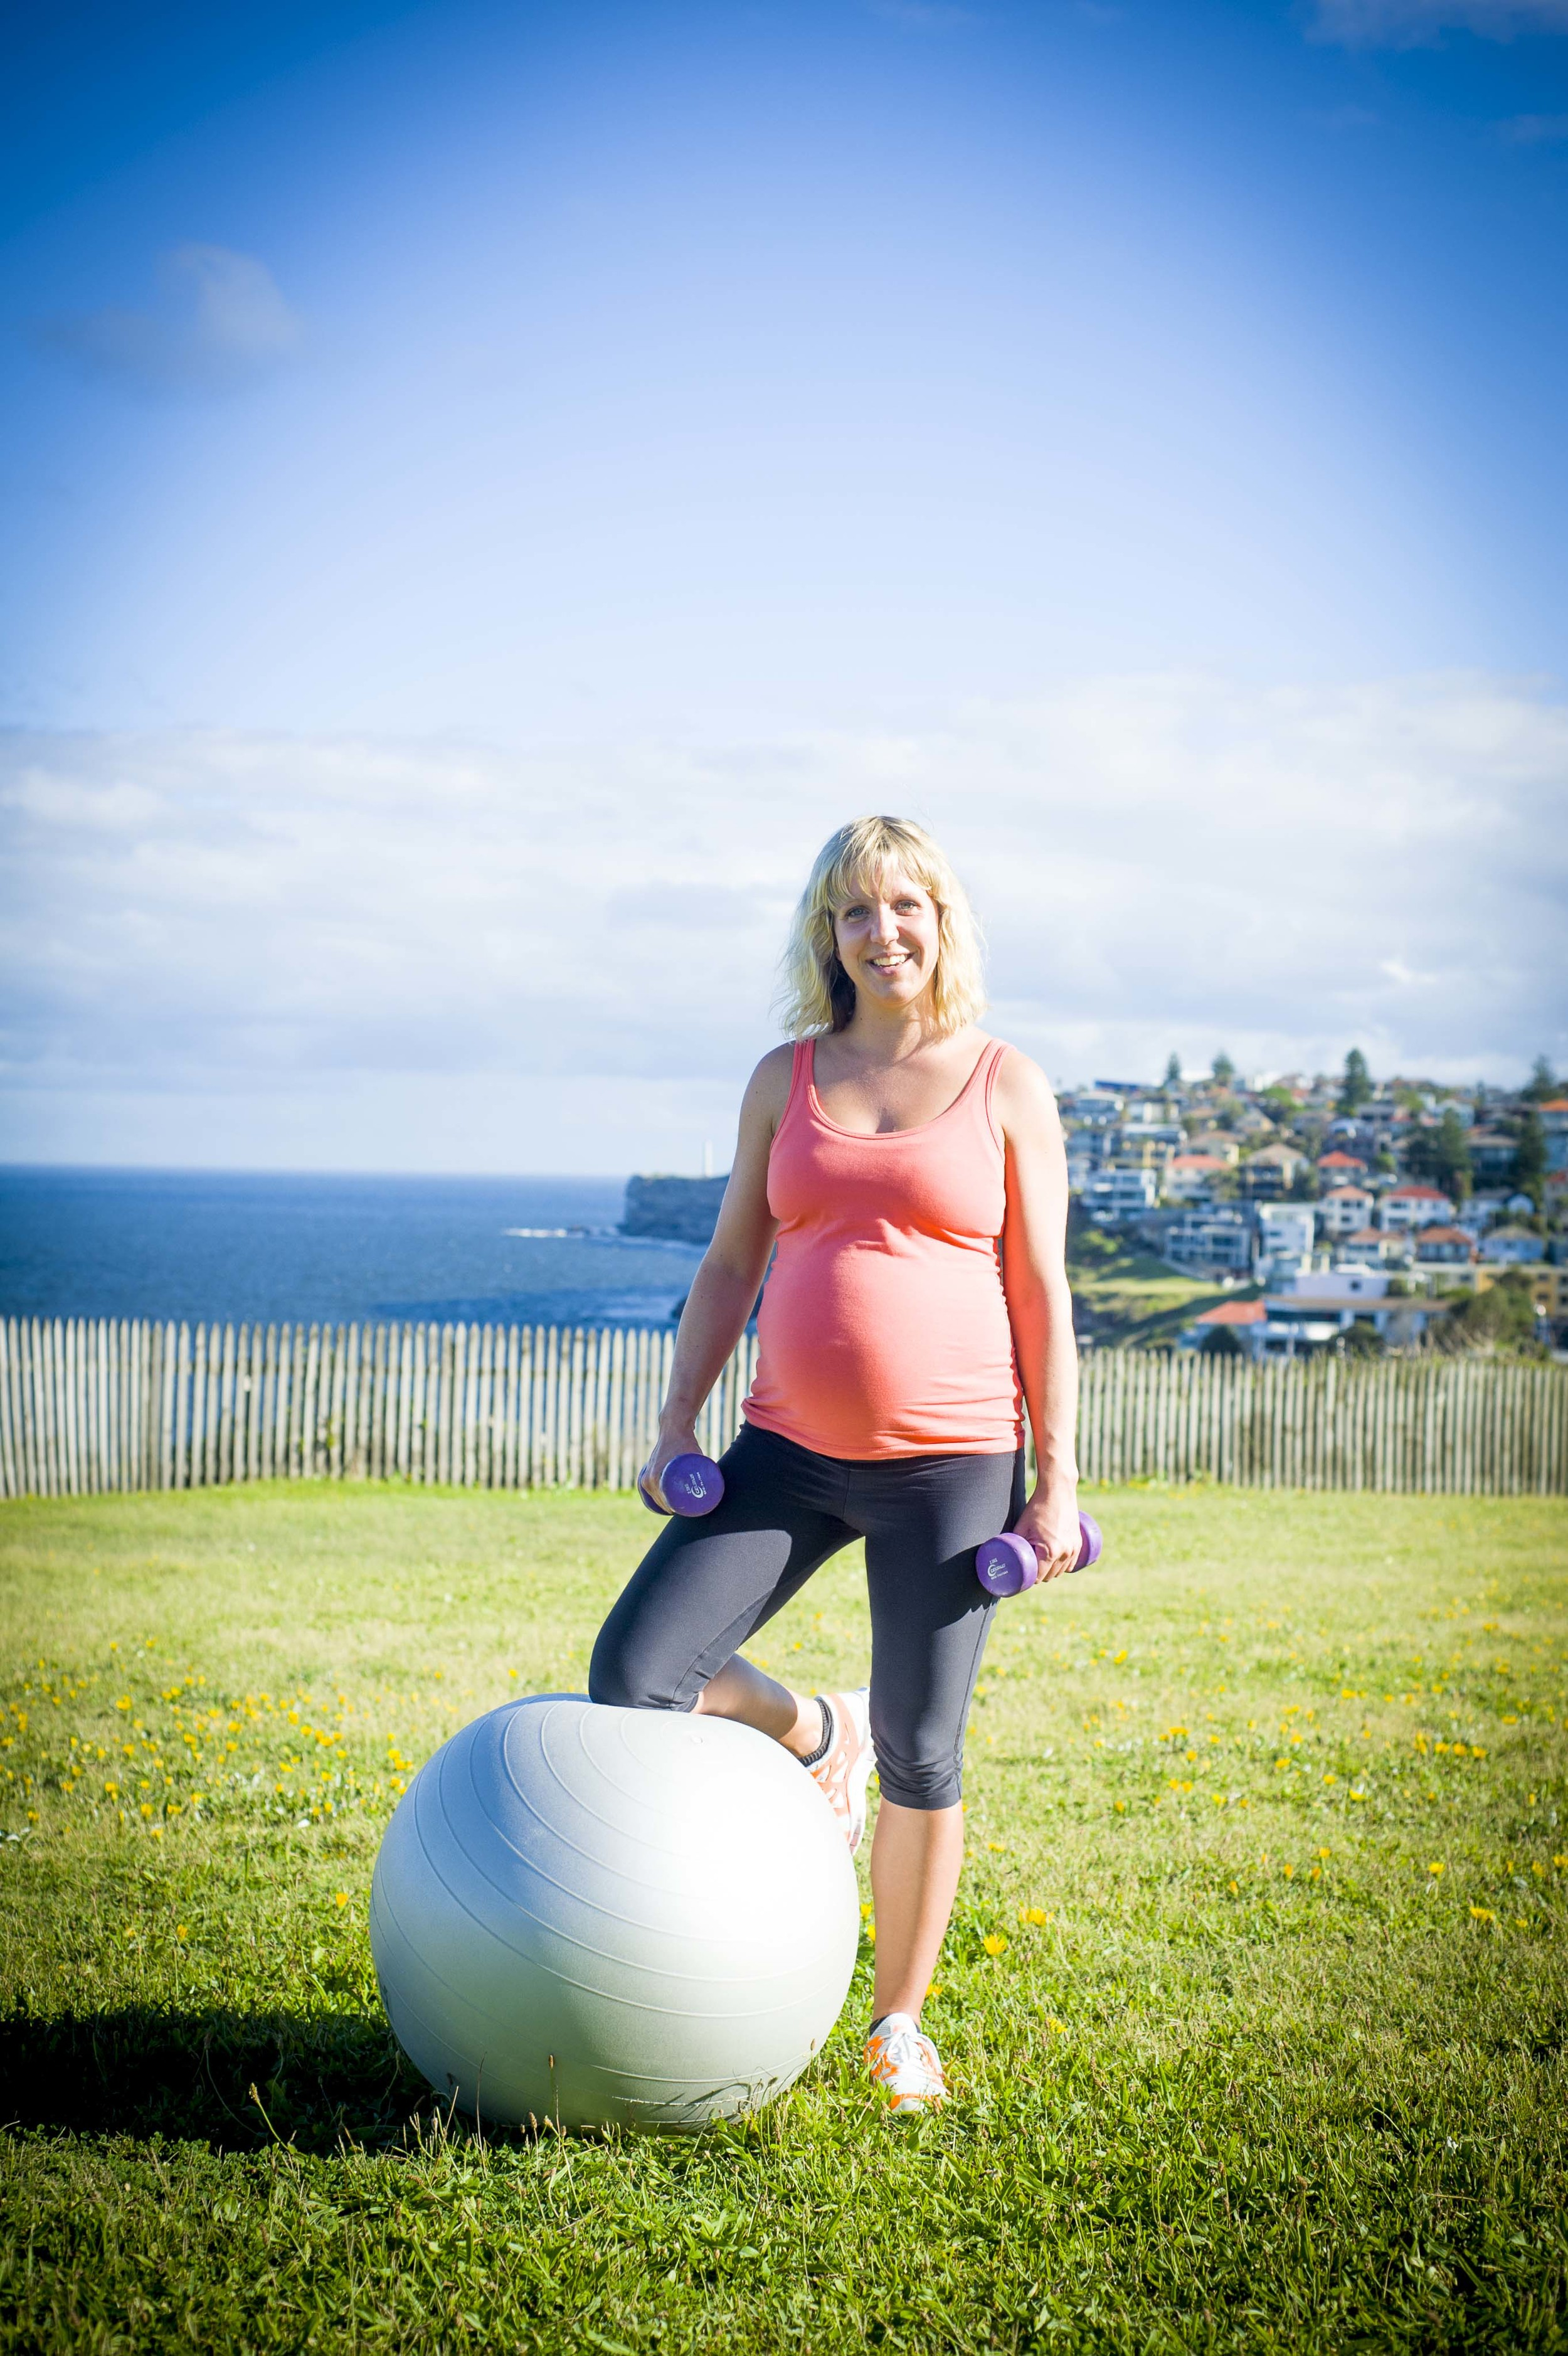 """Perhaps this is more Bondi """"Bump"""" - the effervescent Emily Boylin or Bondi's fitness phenomenon  Bondi Bum    , who is probably the most driven person i know. To cap things off, 24 hours later, her beautiful baby girl Eve was born. That's determination!"""